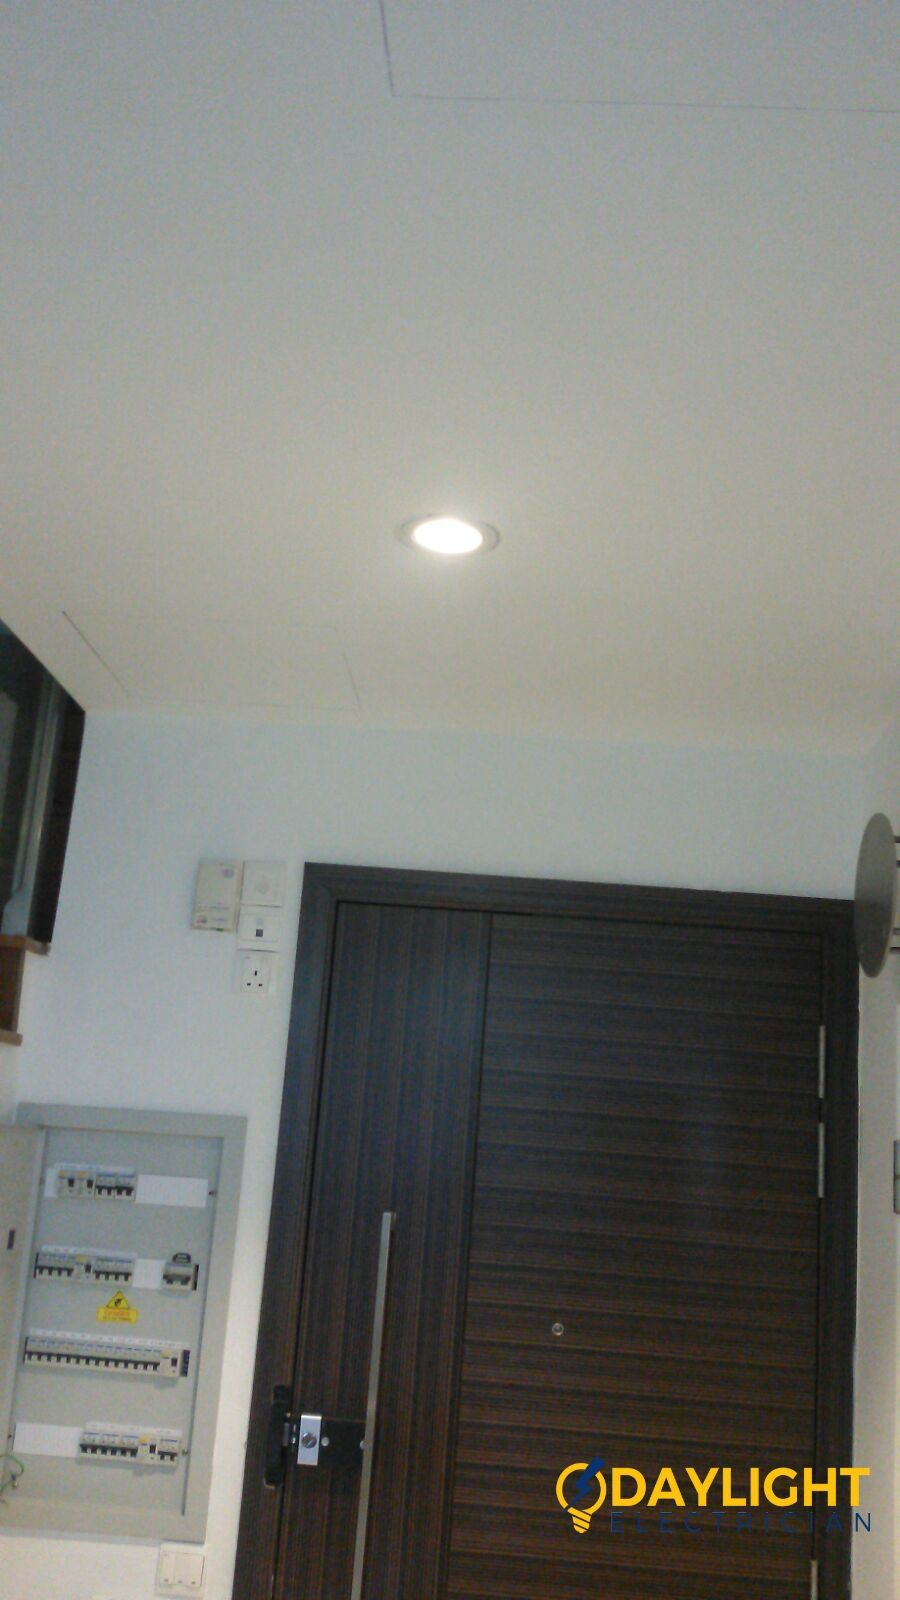 Install Led Ceiling Downlight False Ceiling Electrician Singapore Apartment Sims Ave Electrician Singapore Recommended Electrician Services Singapore Led Ceiling False Ceiling Electrician Services